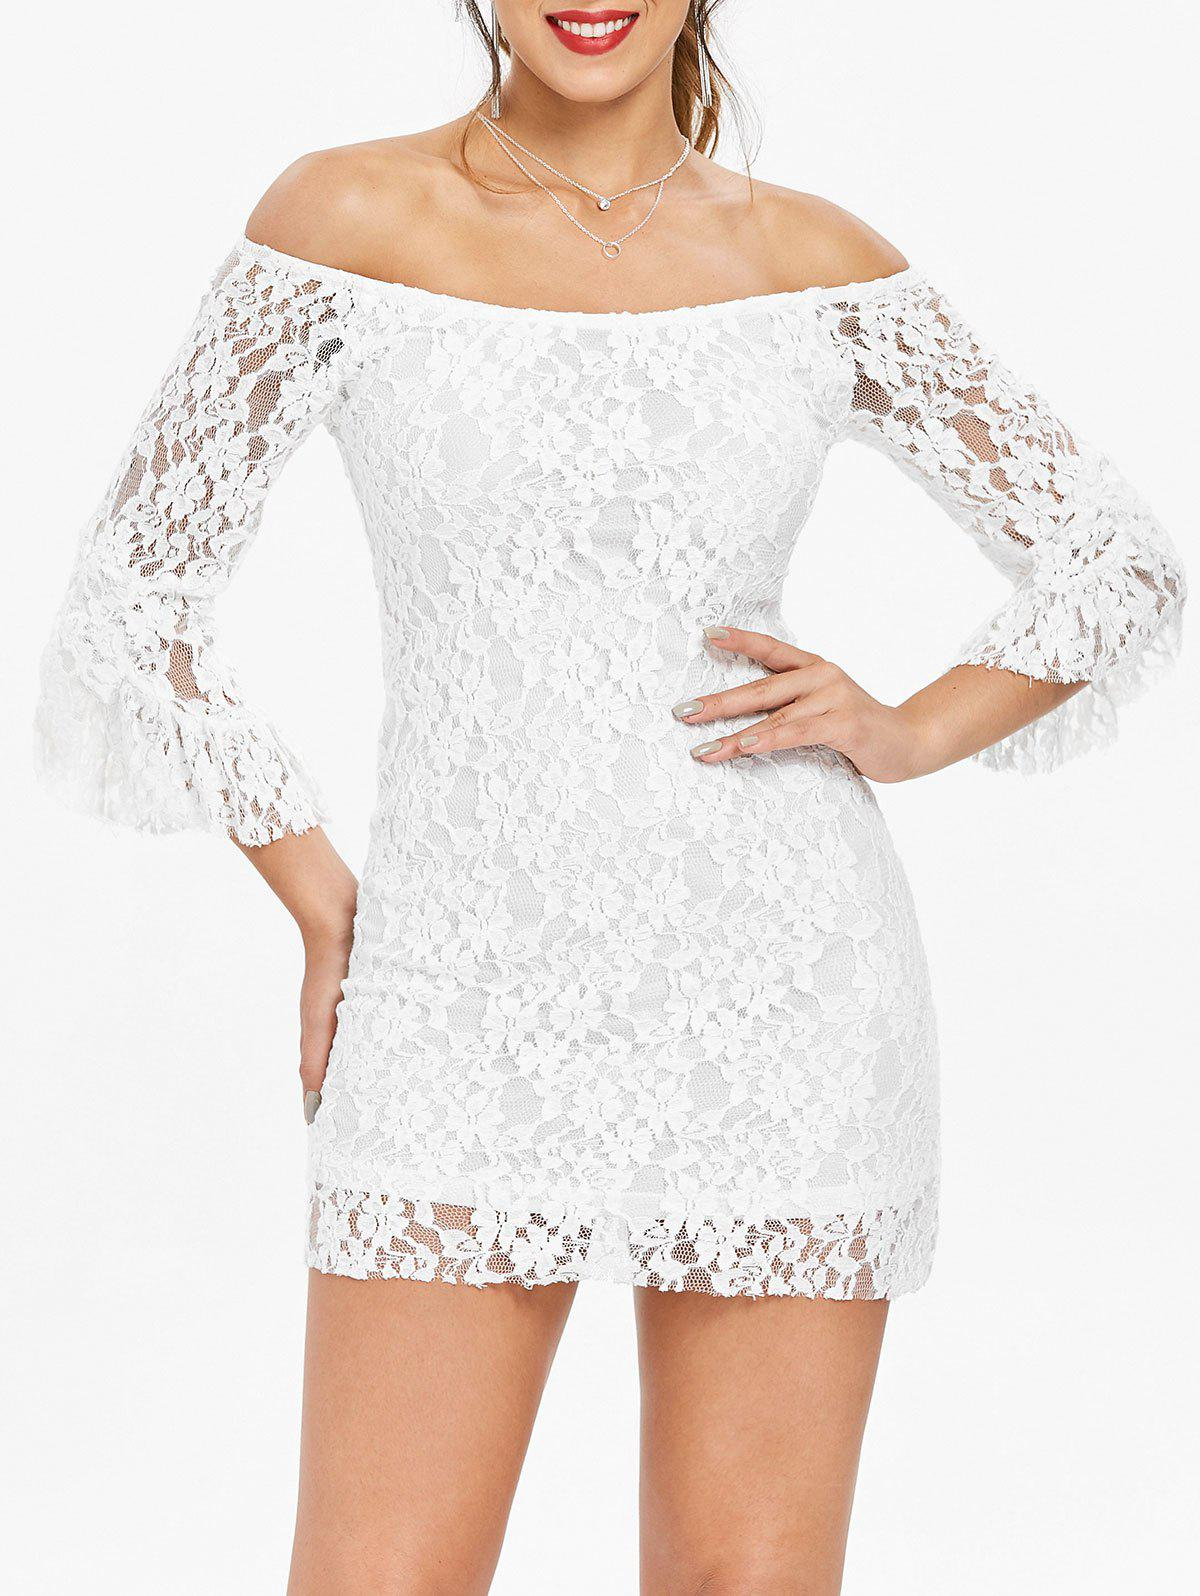 Store Mini Off Shoulder Lace Tight Club Dress